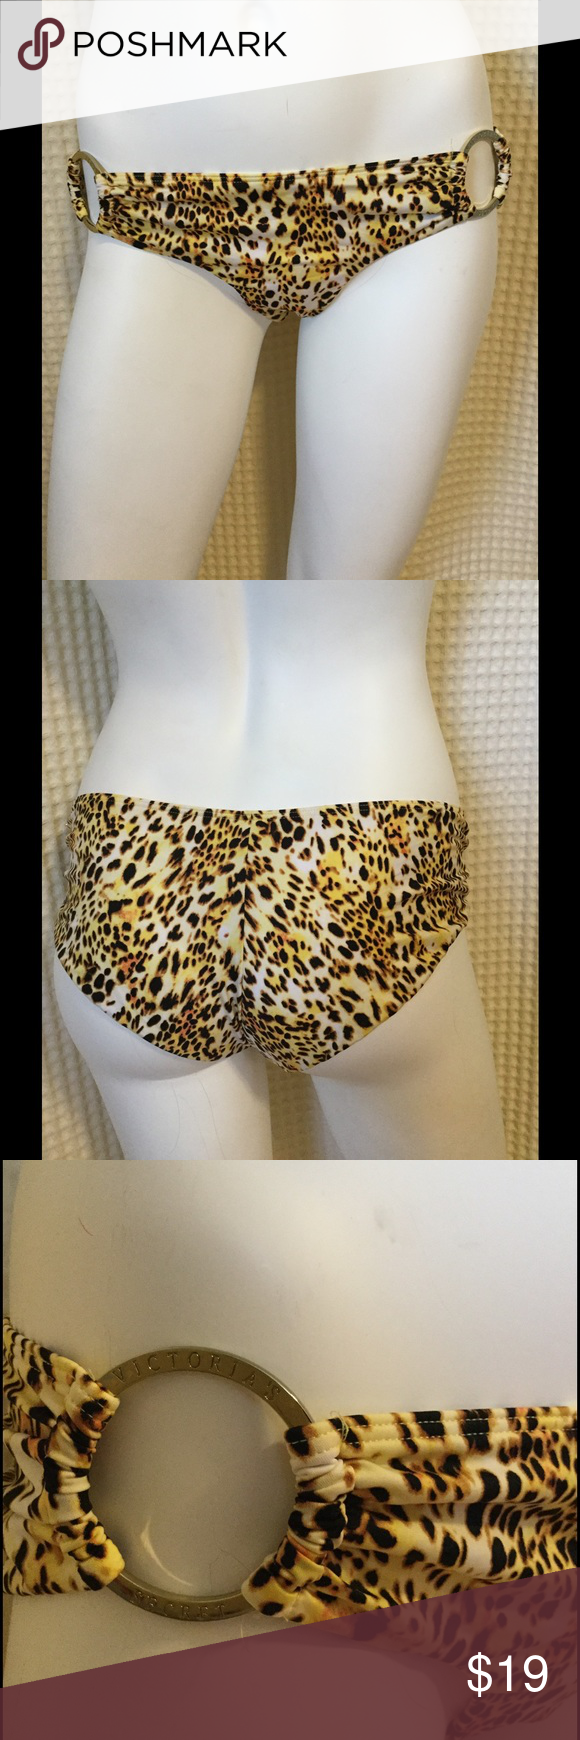 Victoria Secret bikini bottom size M Slightly cheeky super sexy animal print Victoria Secret bikini bottom with gold tone rings displaying Victoria Secret logo. Excellent condition. Size Medium but fits comfortably on my size 4/6 model (small) can be paired nicely with a sold black top. Offers always welcomed! Victoria's Secret Swim Bikinis